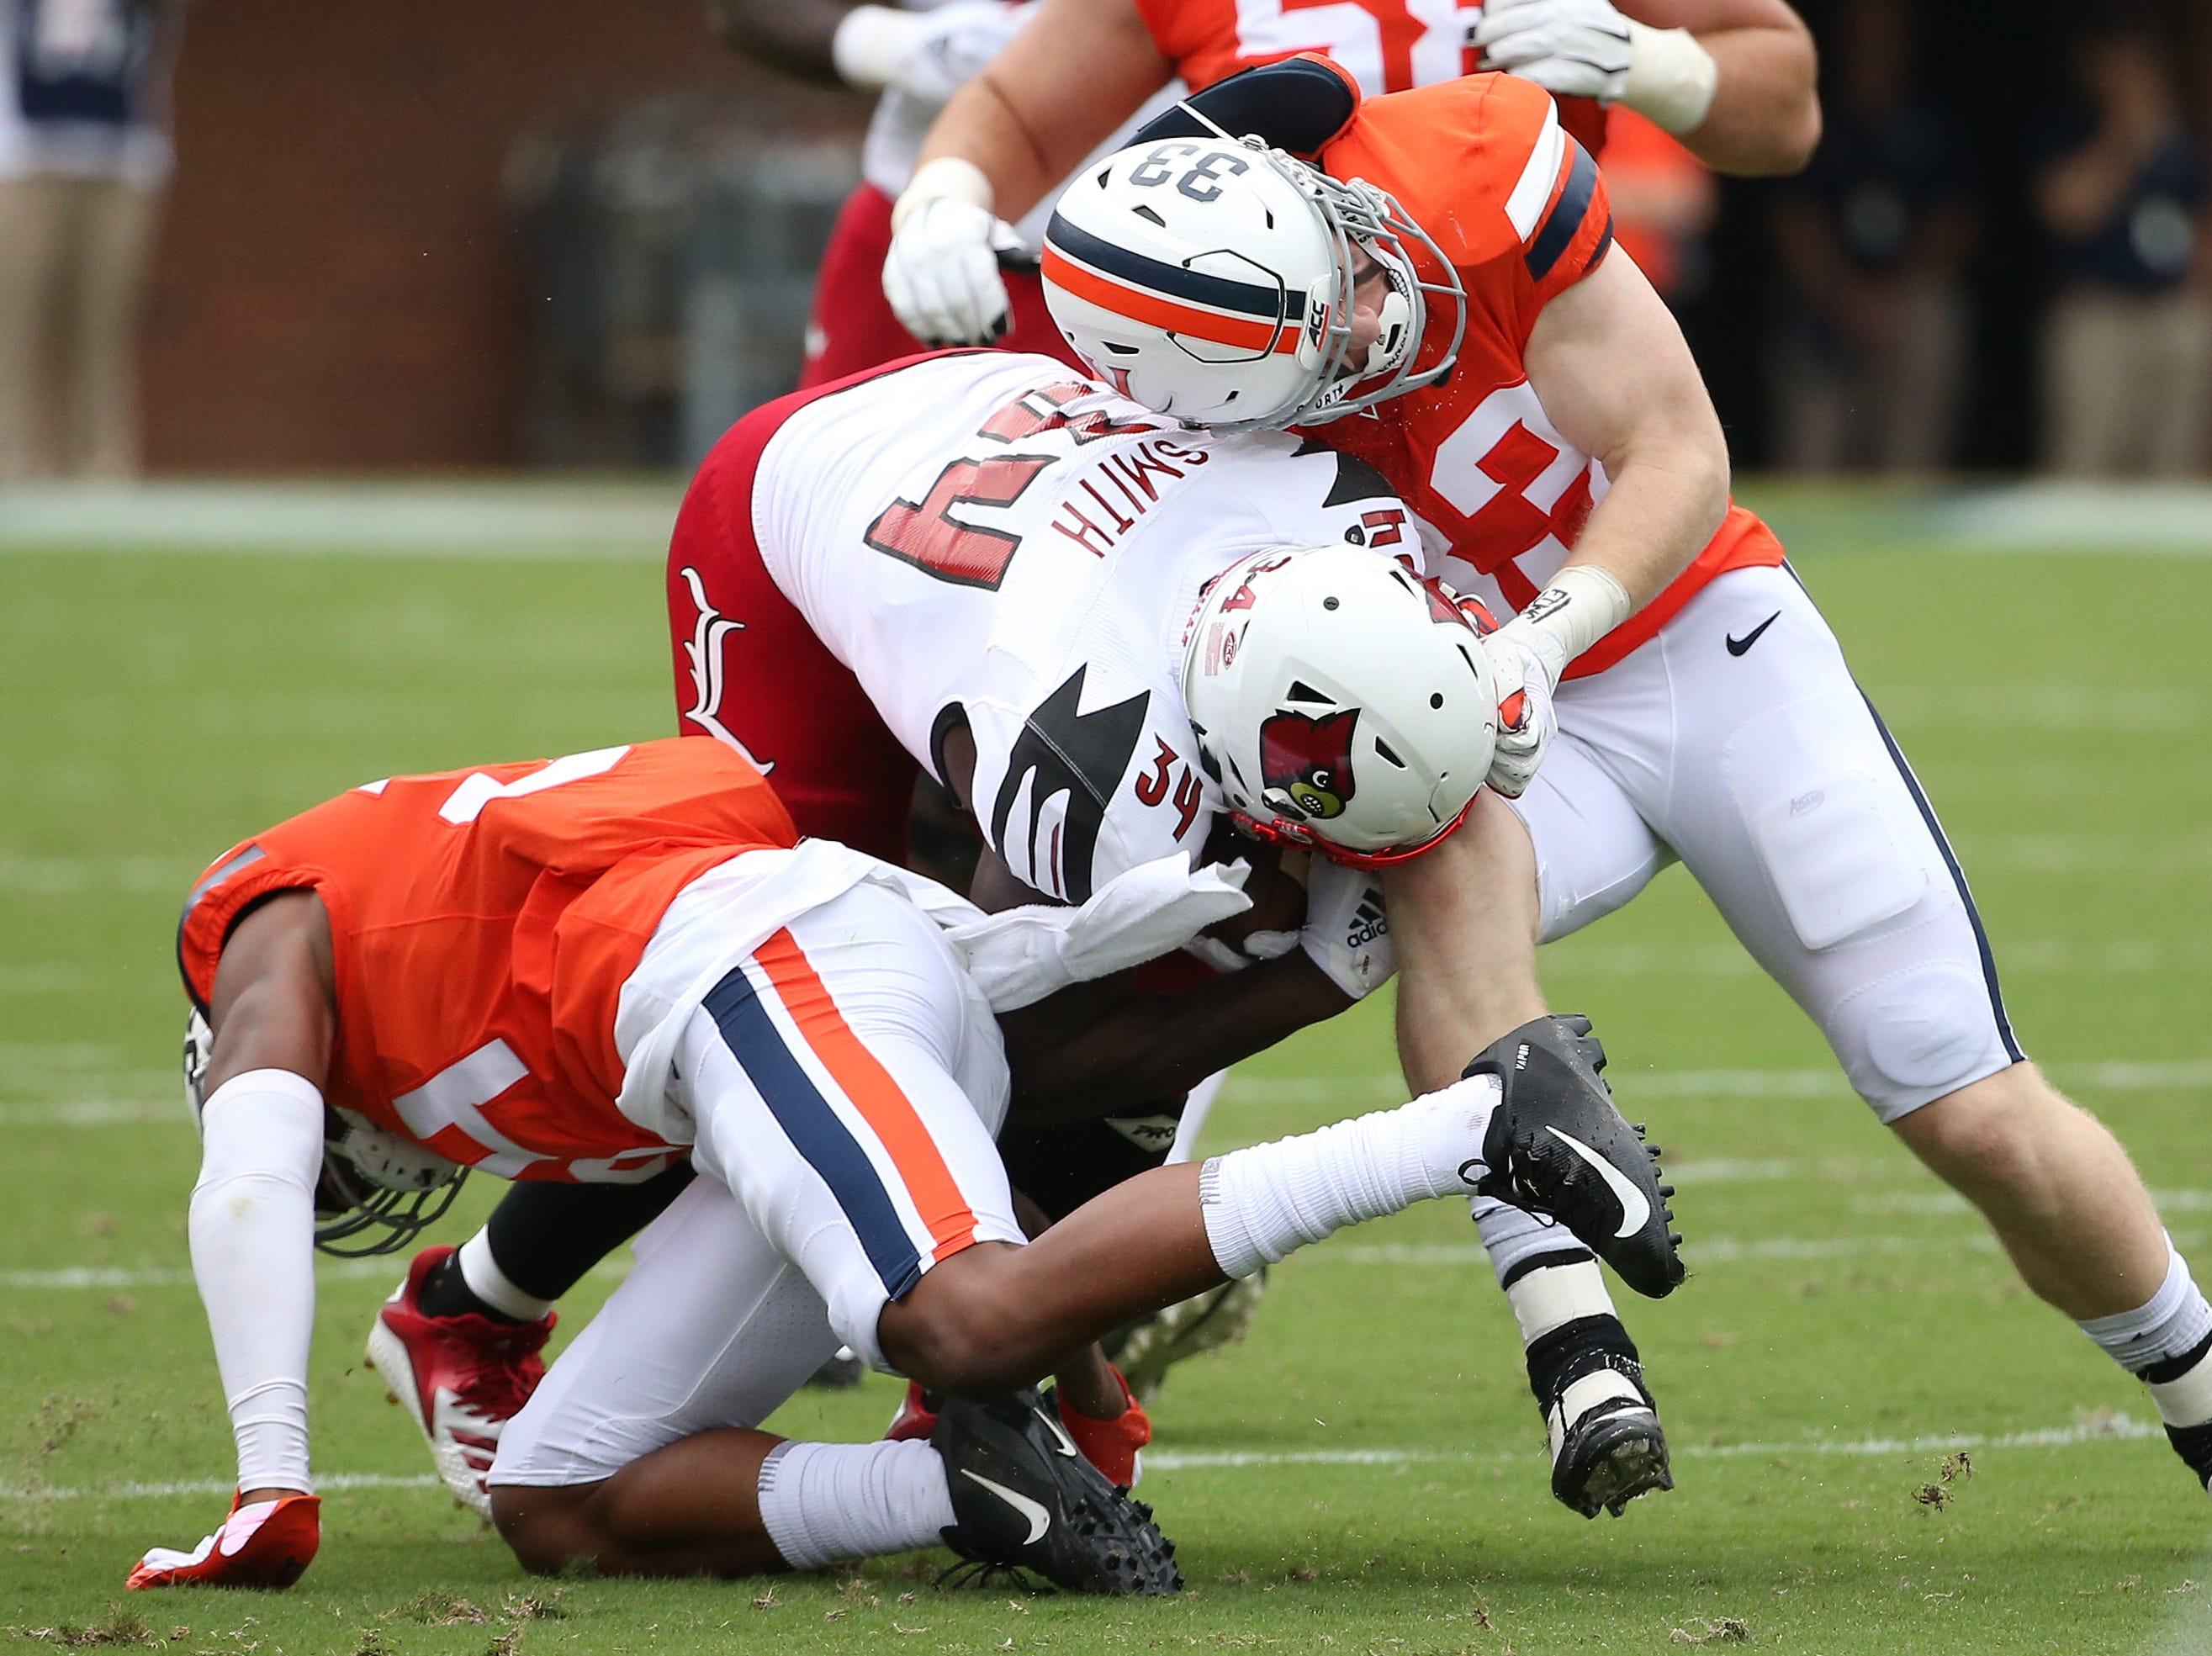 Sep 22, 2018; Charlottesville, VA, USA; Louisville Cardinals running back Jeremy Smith (34) is tackled by Virginia Cavaliers safety CJ Epps (39) and Cavaliers cornerback Bryce Hall (34) in the first quarter at Scott Stadium. Mandatory Credit: Geoff Burke-USA TODAY Sports